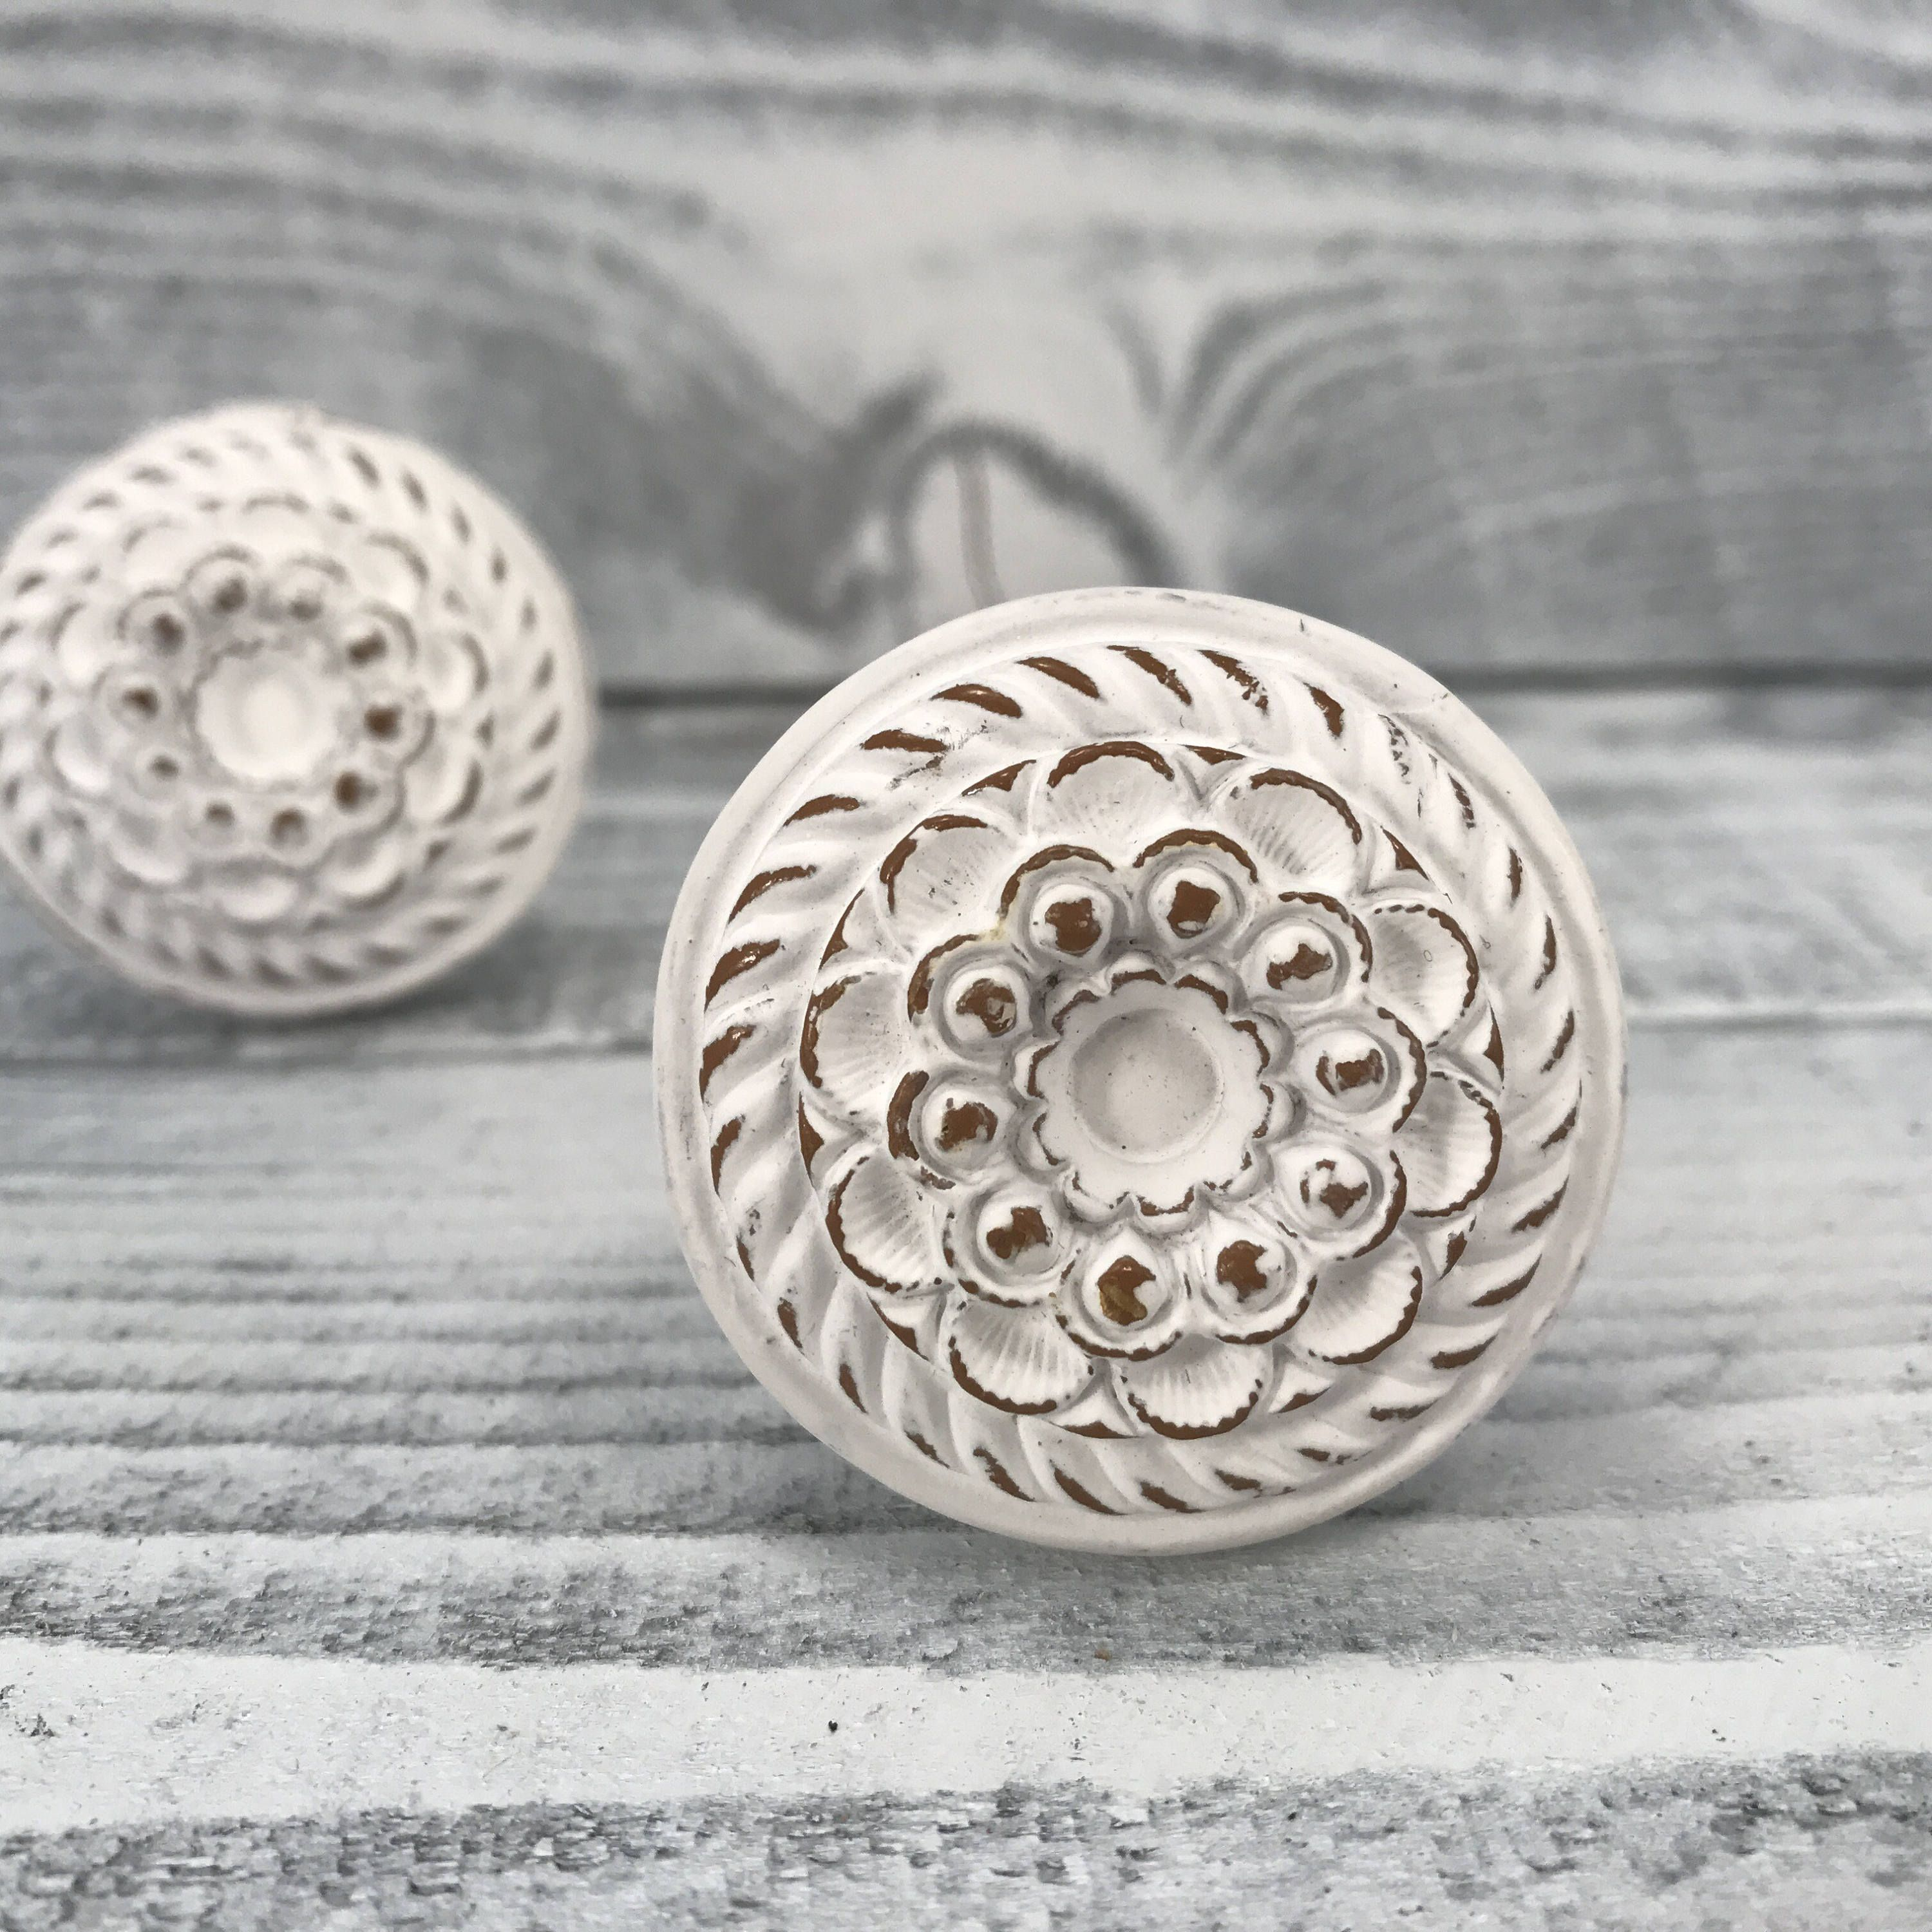 White Washed Shabby Chic Knobs, White & Gold, French Country Drawer Pulls, Farmhouse Knob Cabinet Supply, Item #516965860 by MiCraftSupplies on Etsy